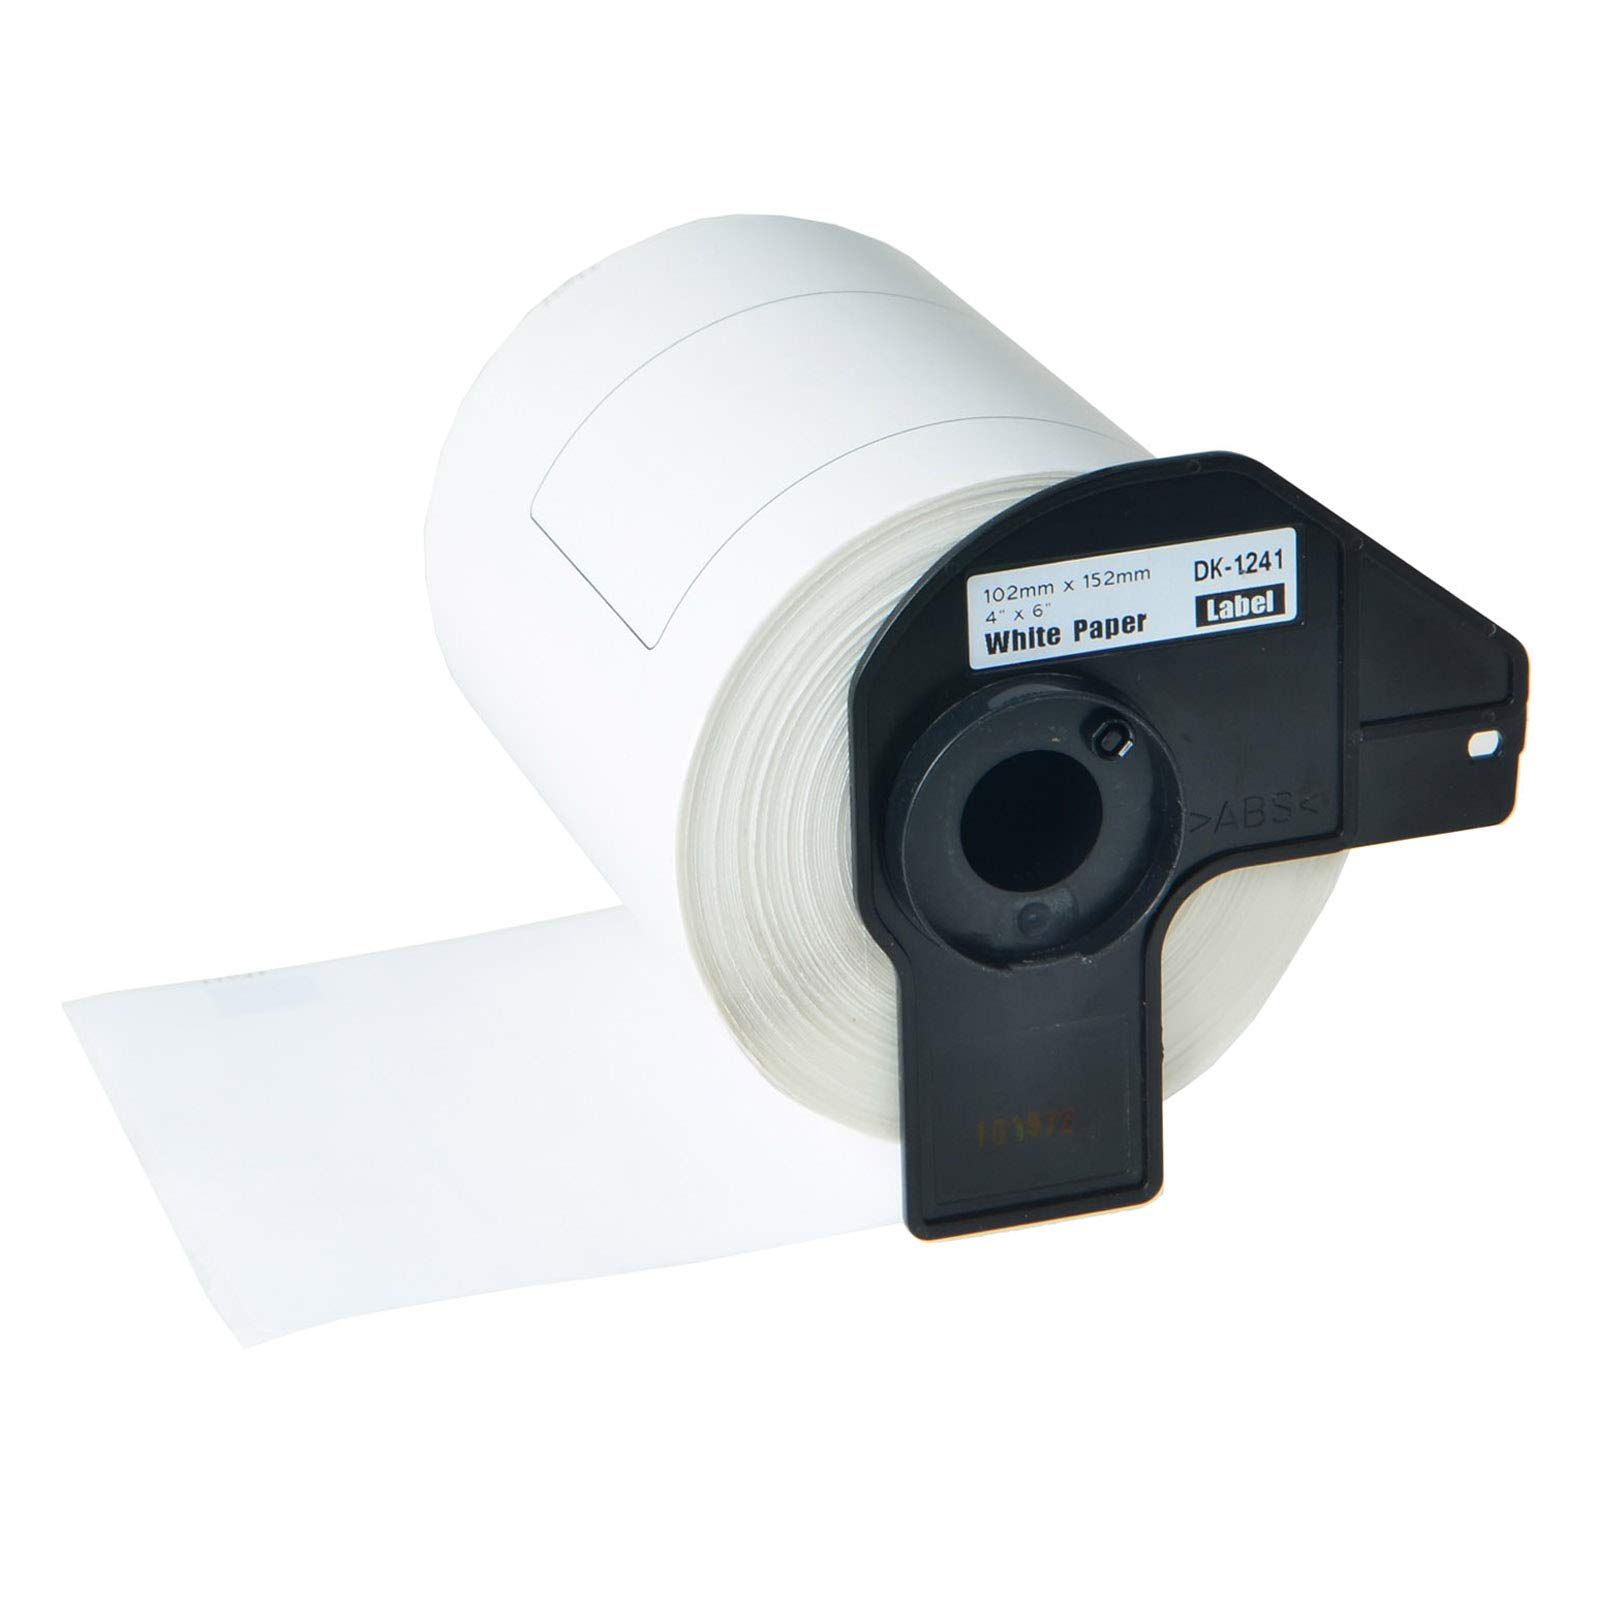 KCYMTONER 1 Roll of Compatible Brother DK-1241 101mm x 152mm(4'' x 6'') Continuous Length Paper Tape Labels with Refillable Cartridge, Use for Brother QL-1050 QL-1050N QL-1060N QL Printer